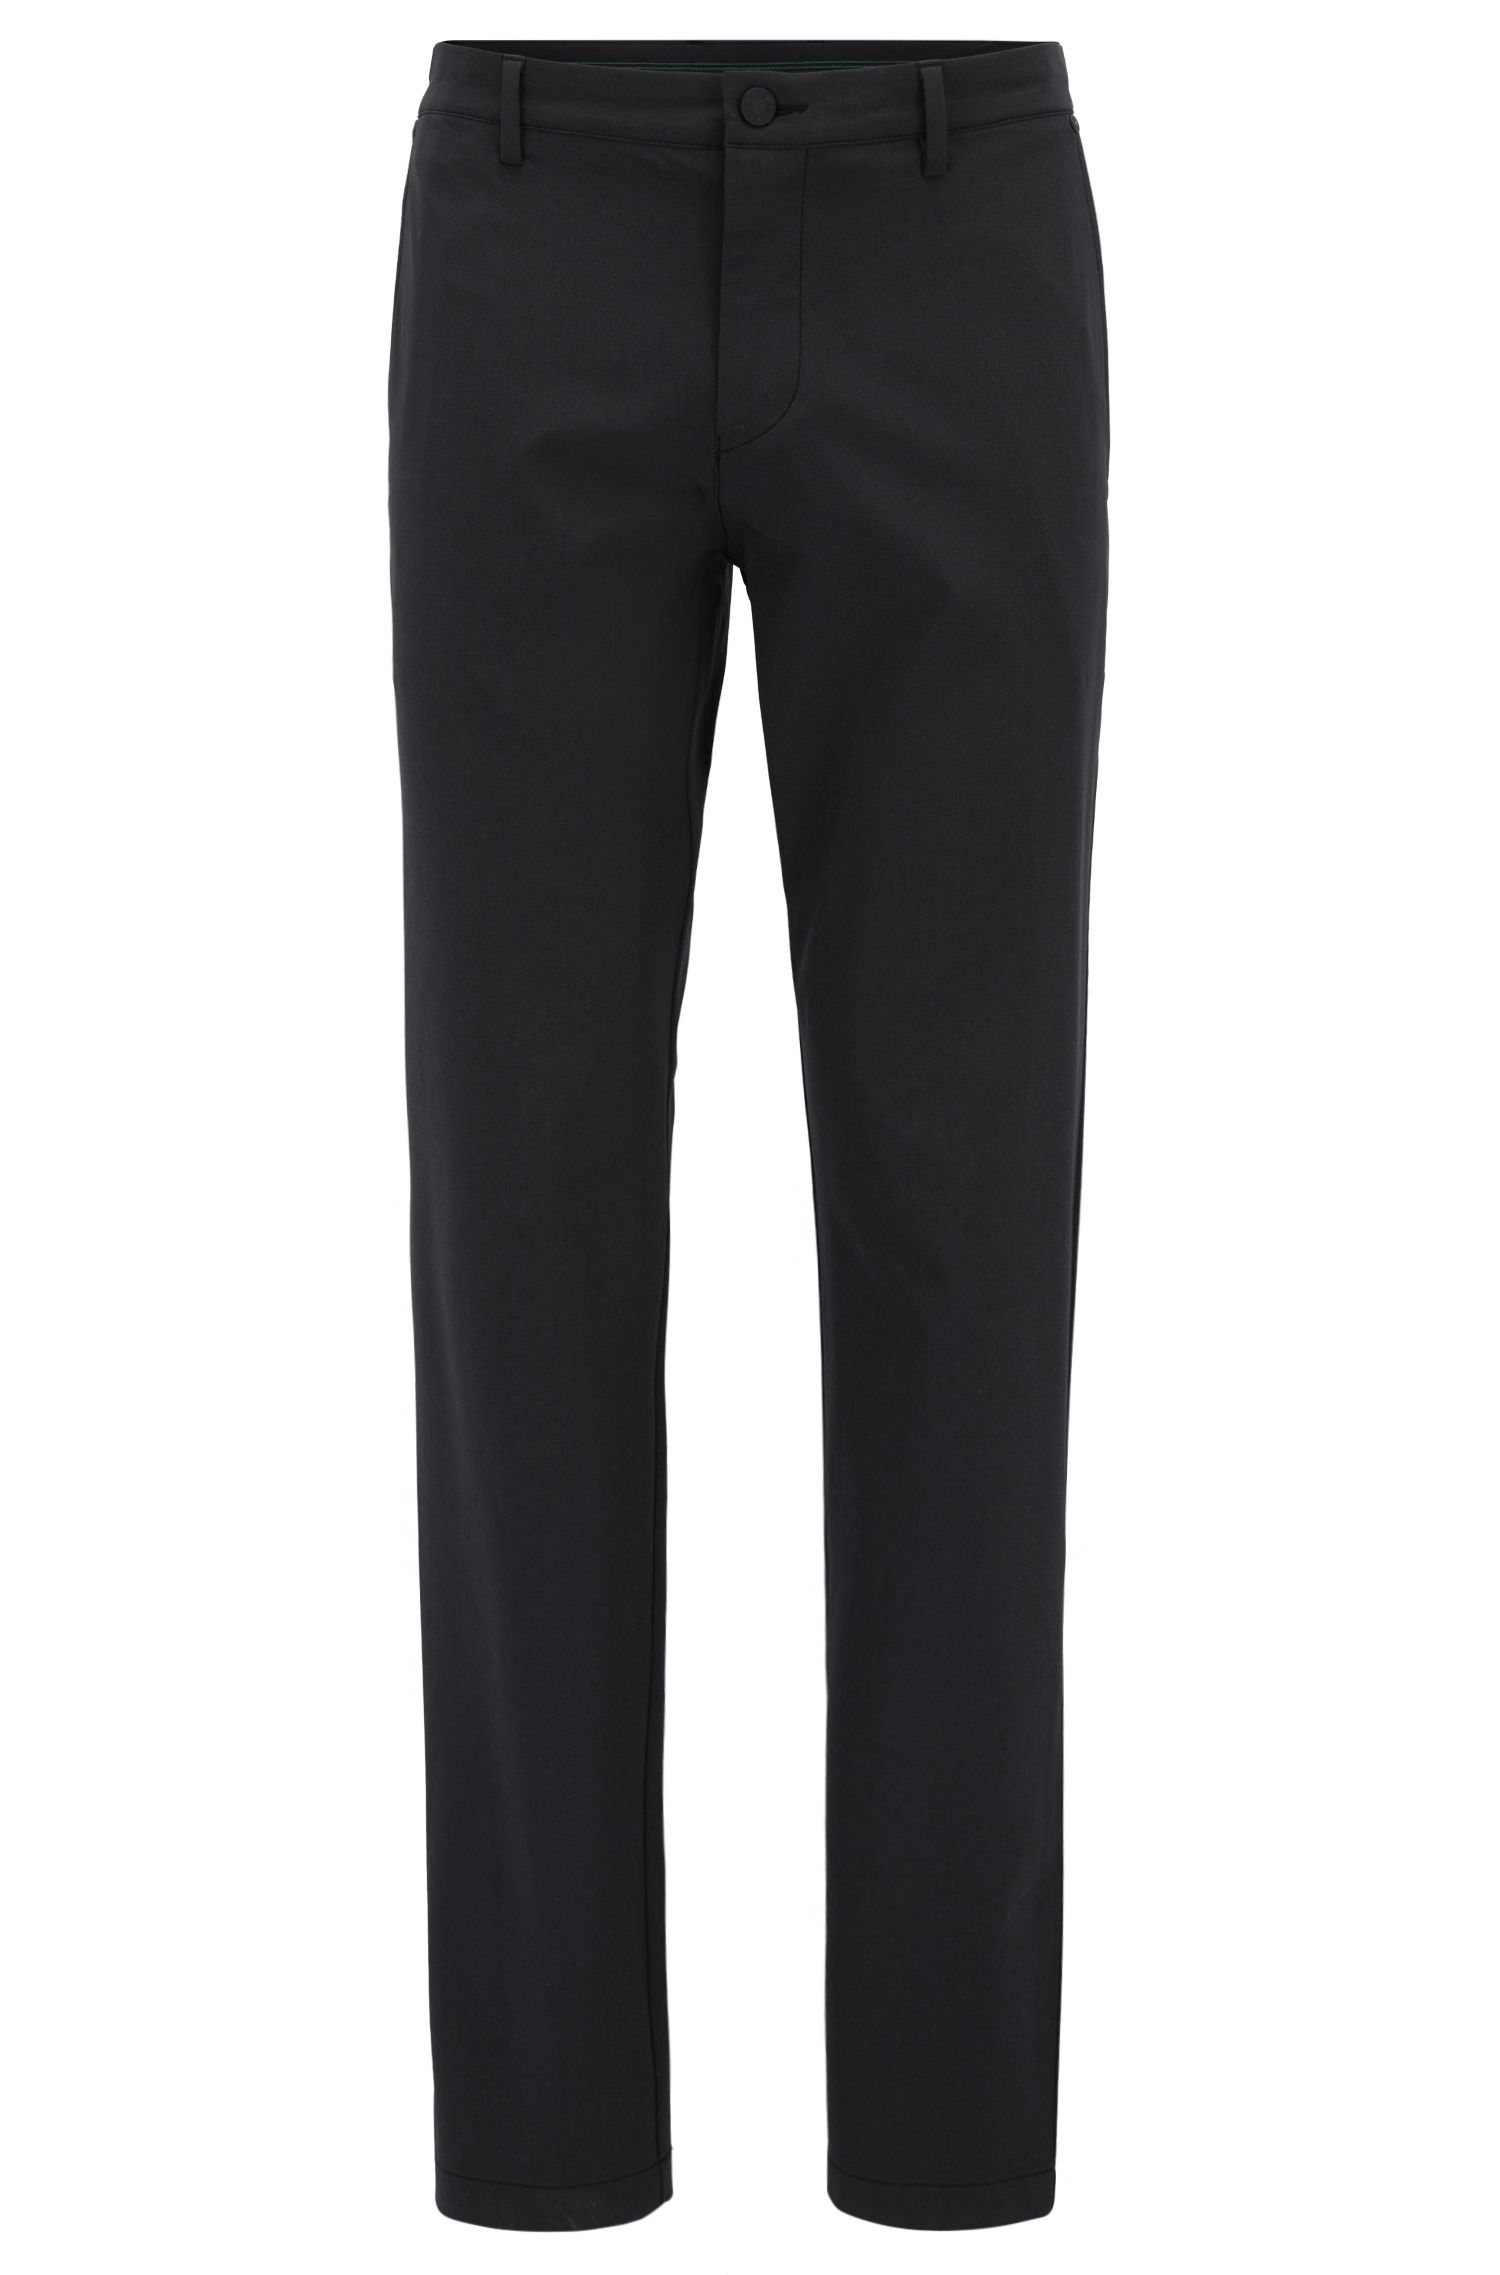 Extra-slim-fit trousers in stretch technical fabric